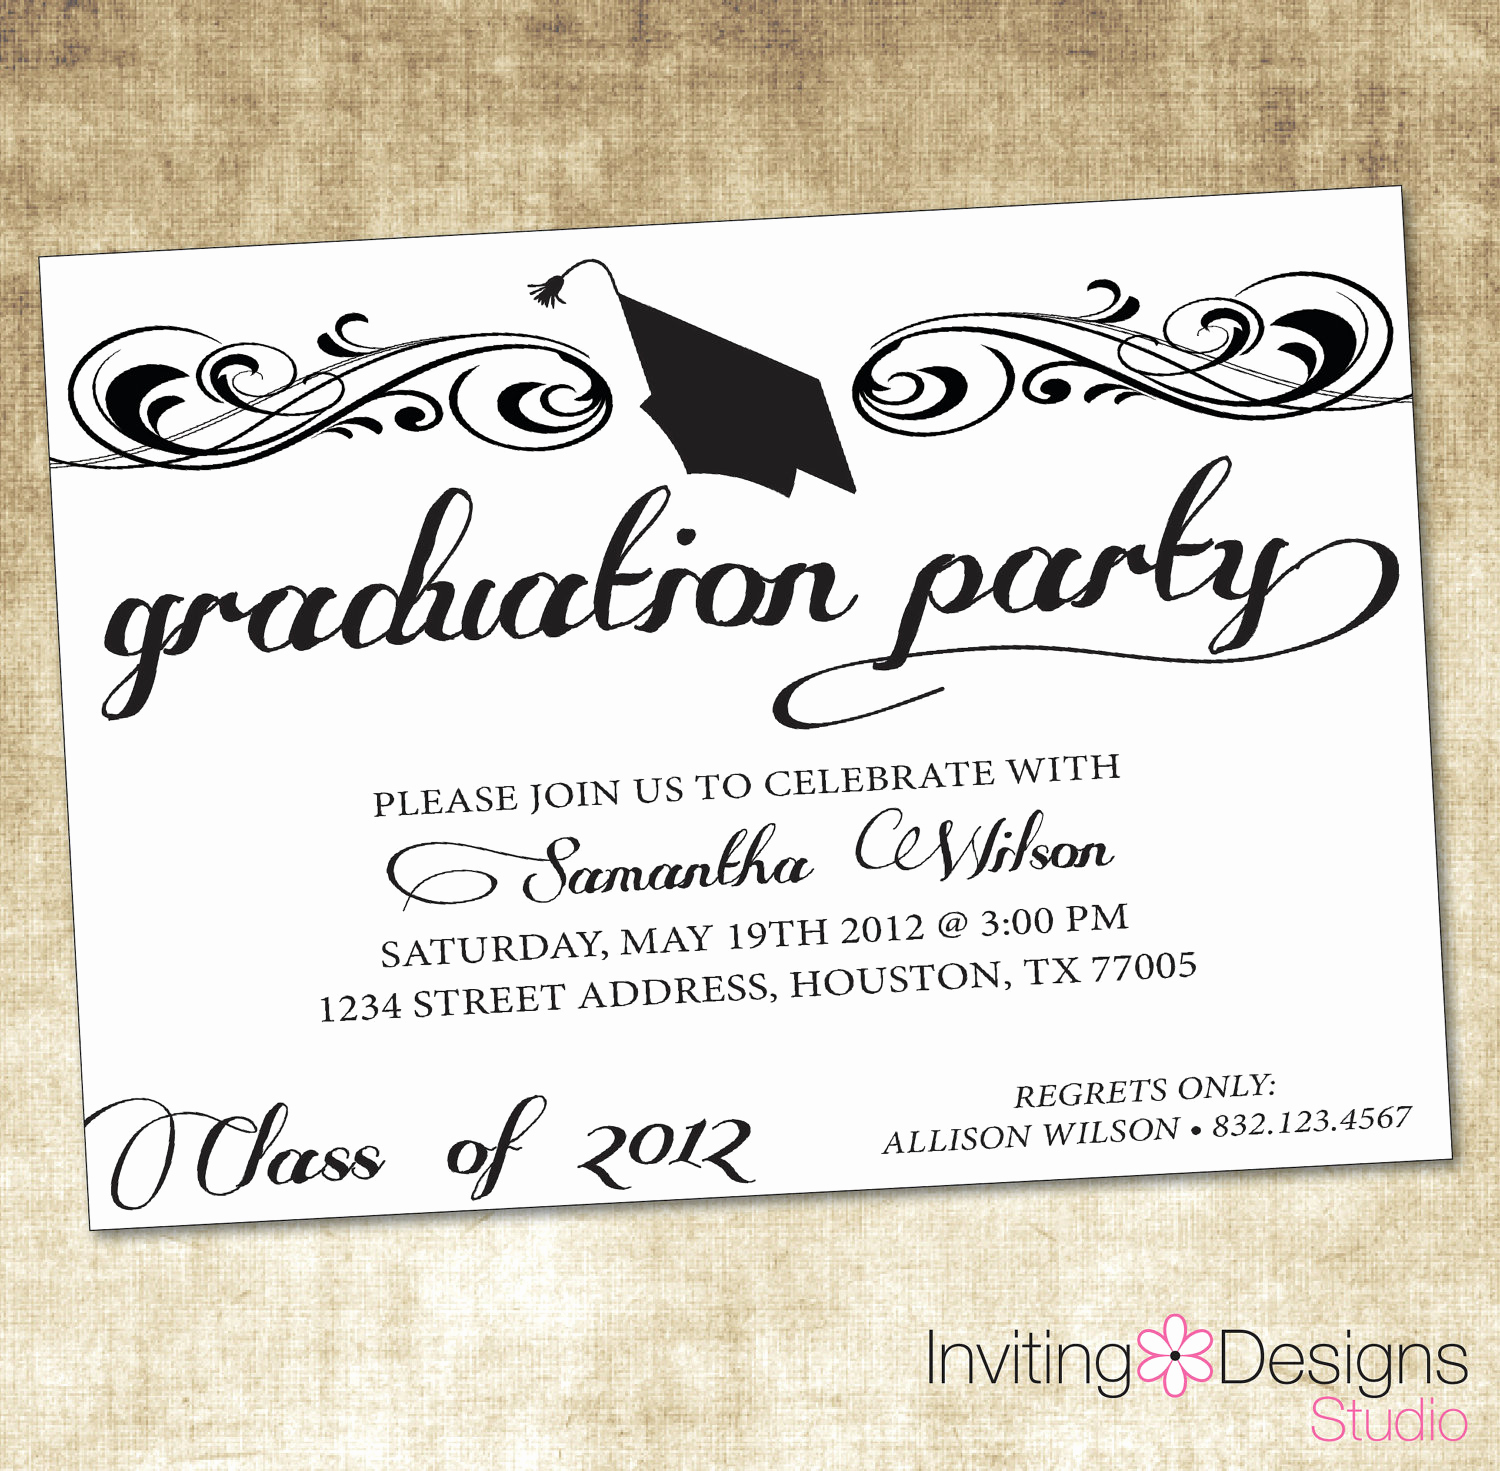 Phd Graduation Party Invitation Wording Best Of Quotes for Graduation Party Invitations Quotesgram